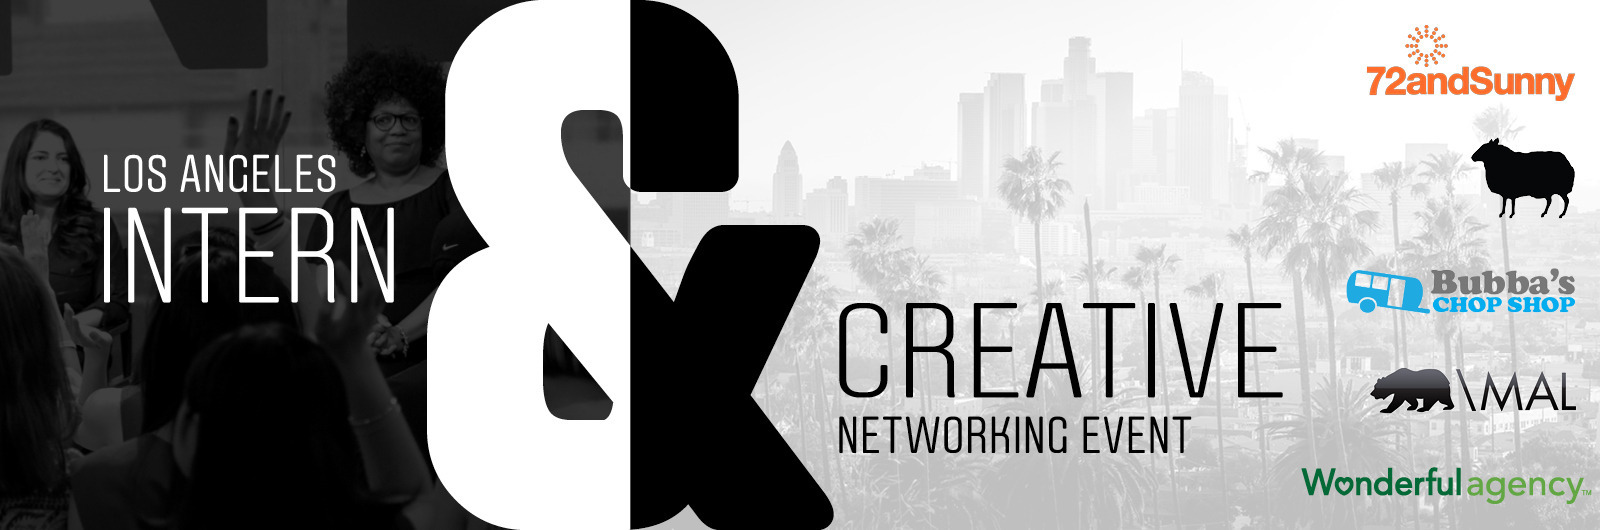 Los Angeles Intern and Creative - Networking Event 2019